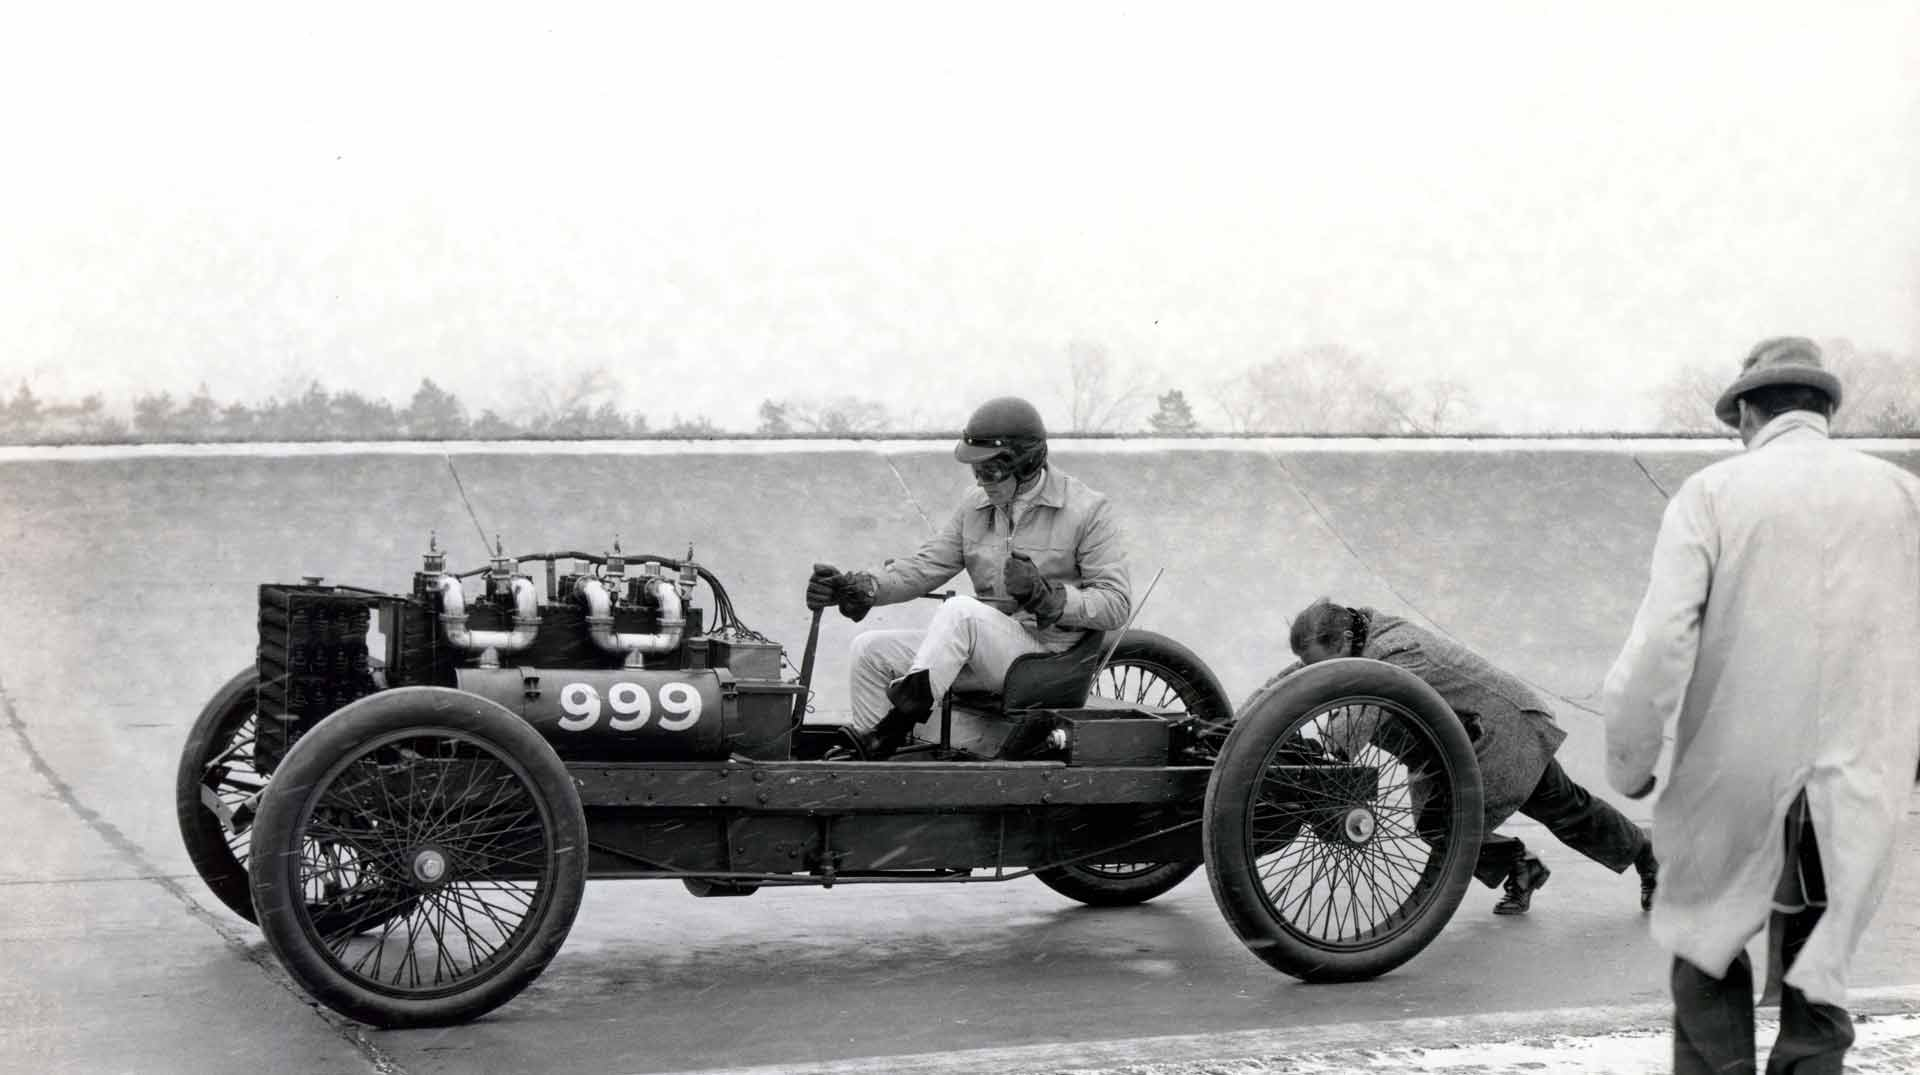 Ford-999-Race-auto-1902-(11)